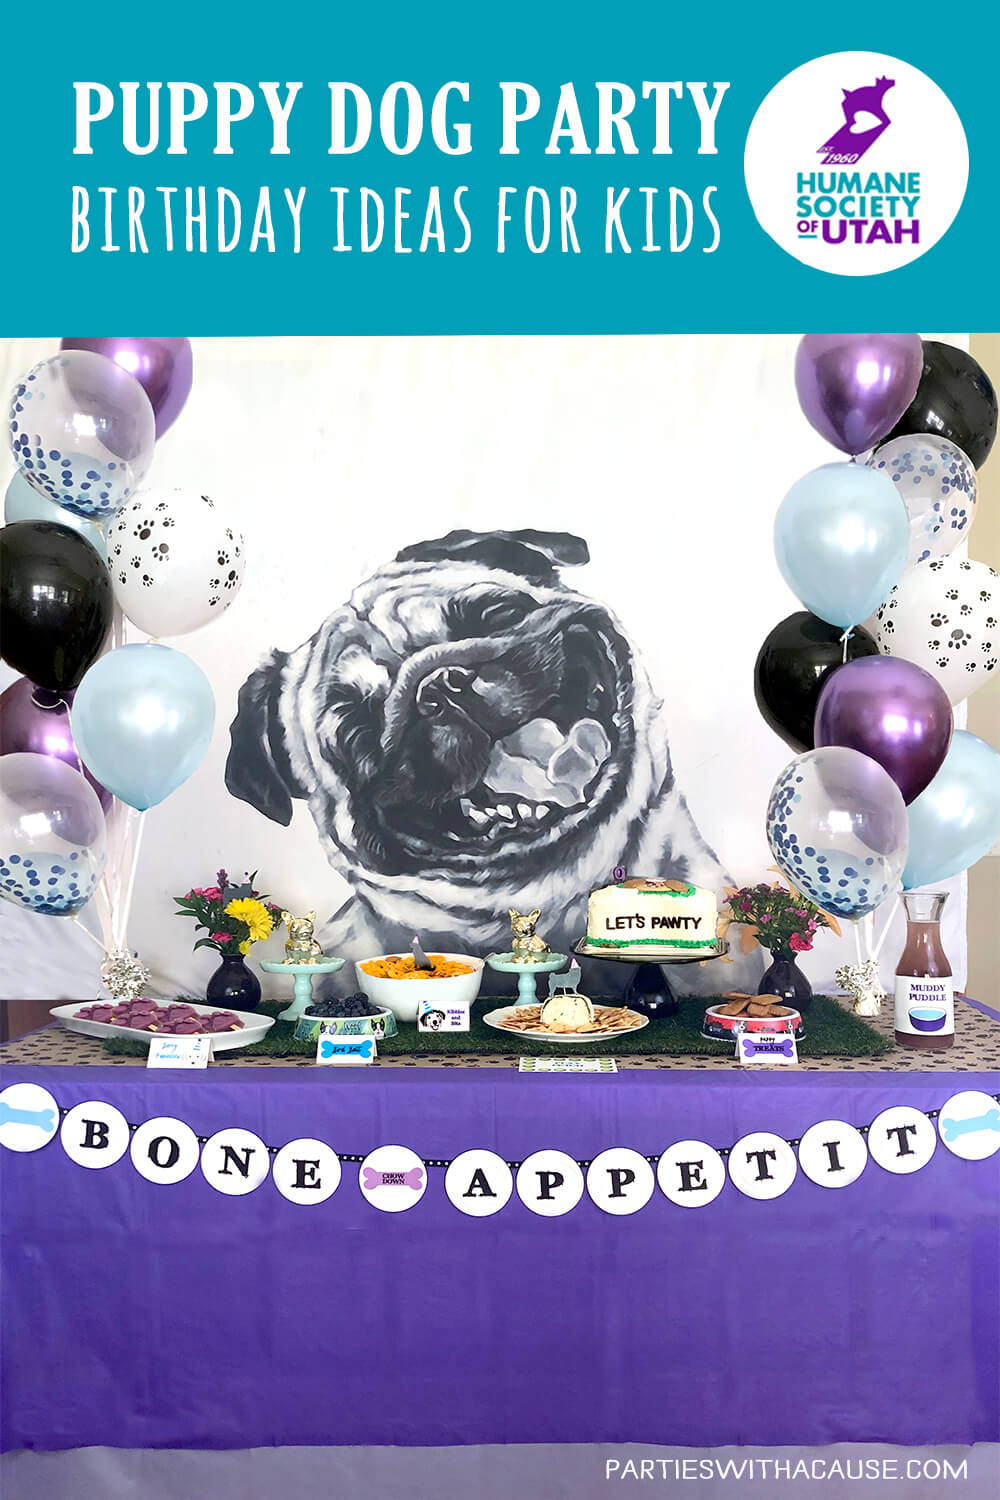 Bone Appetit! Dog Themed Puppy Birthday Party Ideas